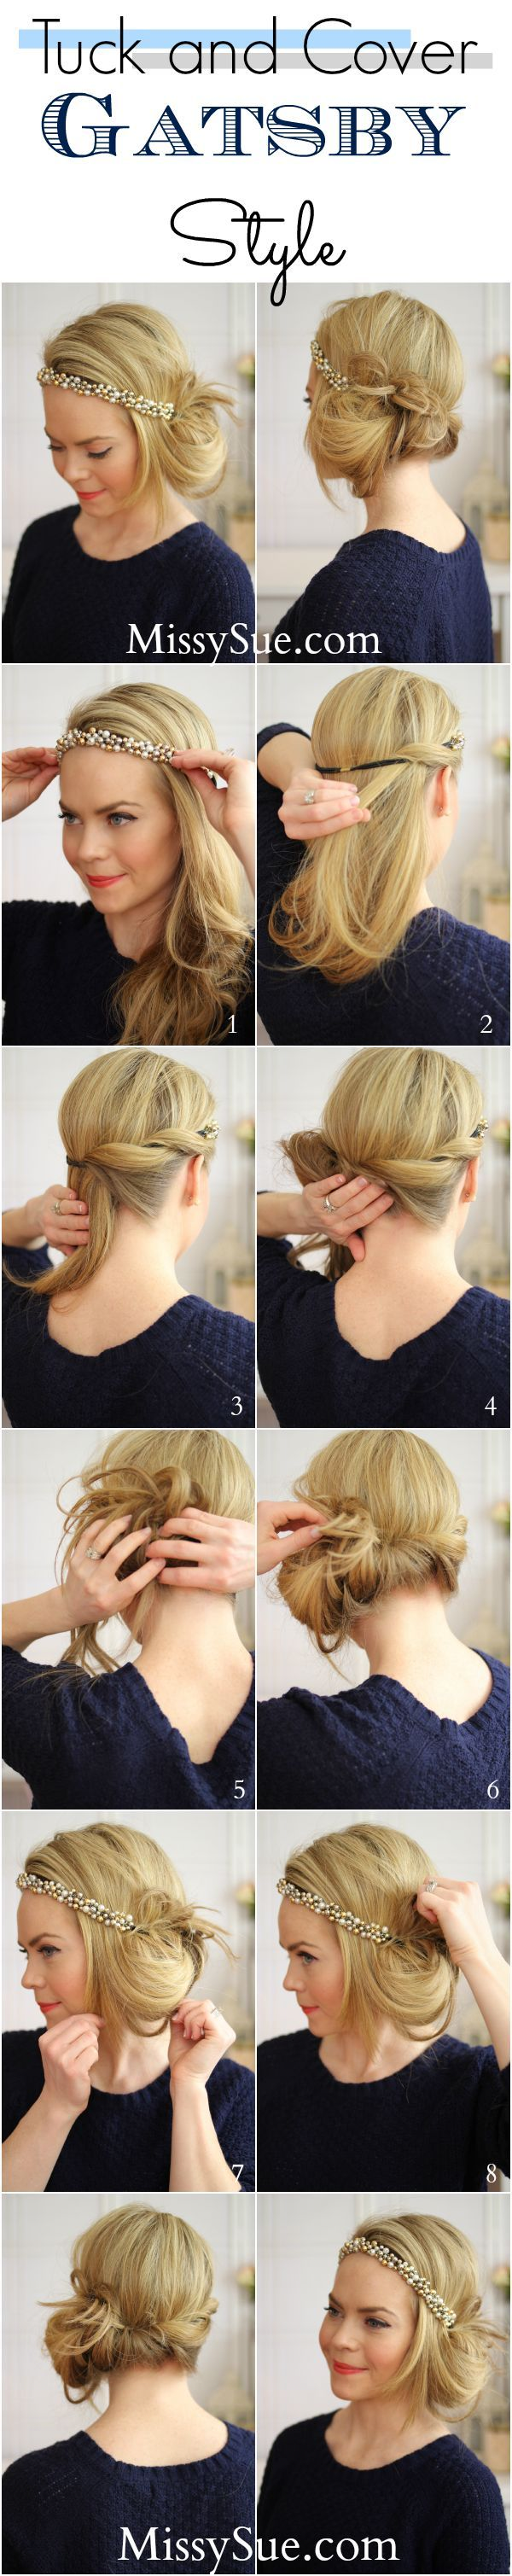 36 Diy Cosmetic Hacks You Need To Know About You Re So Pretty Hair Styles Gatsby Hair Long Hair Styles